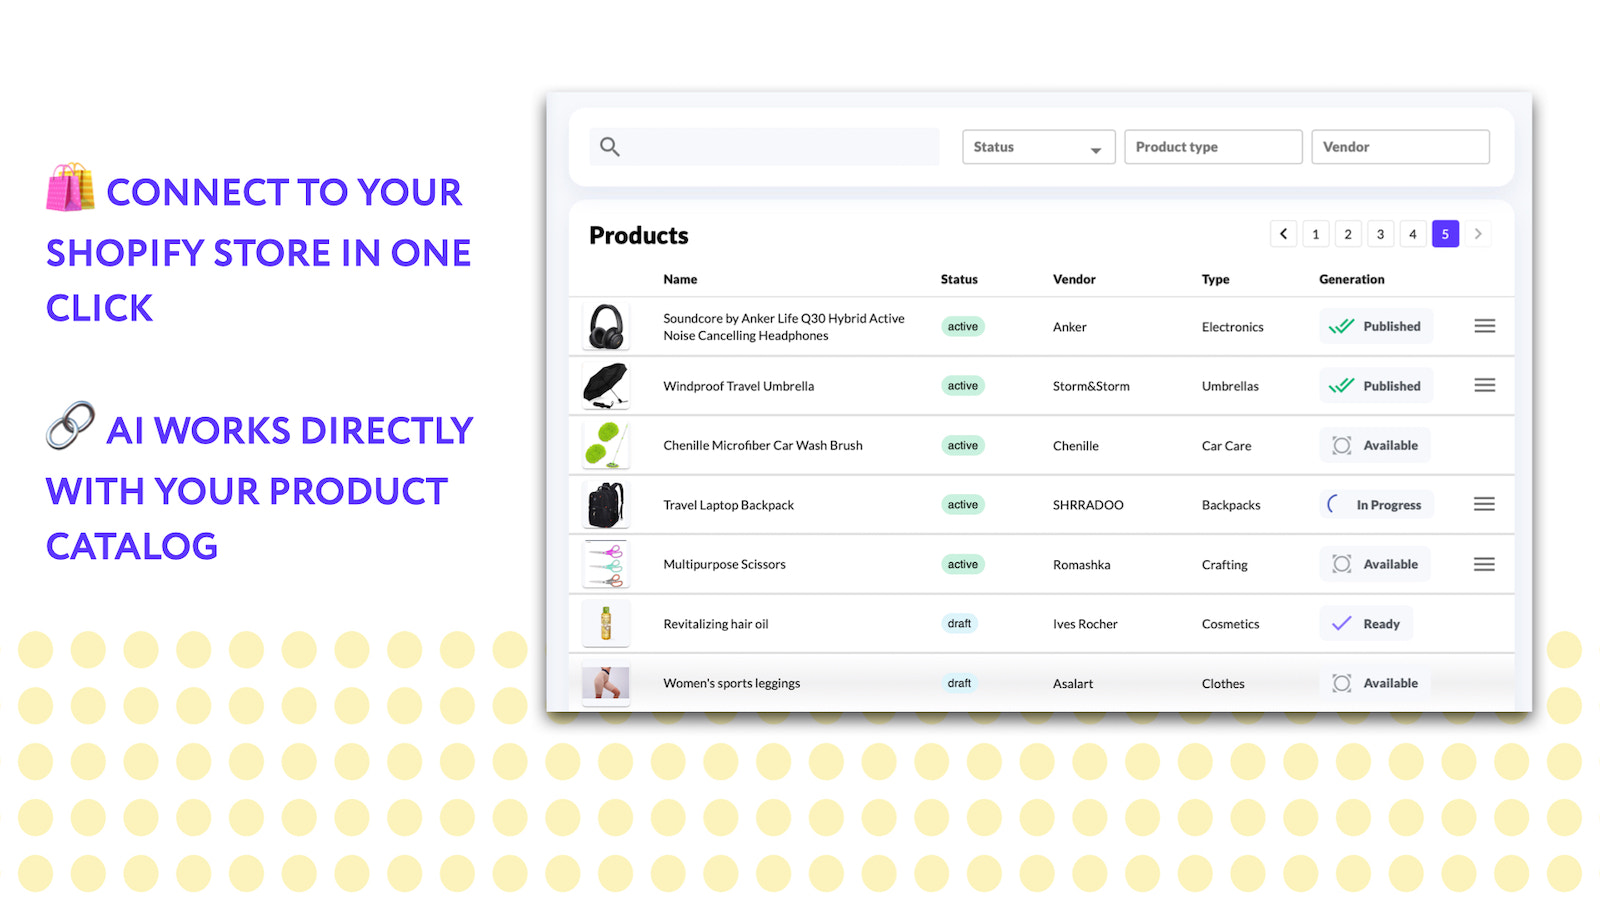 Connect with your catalog